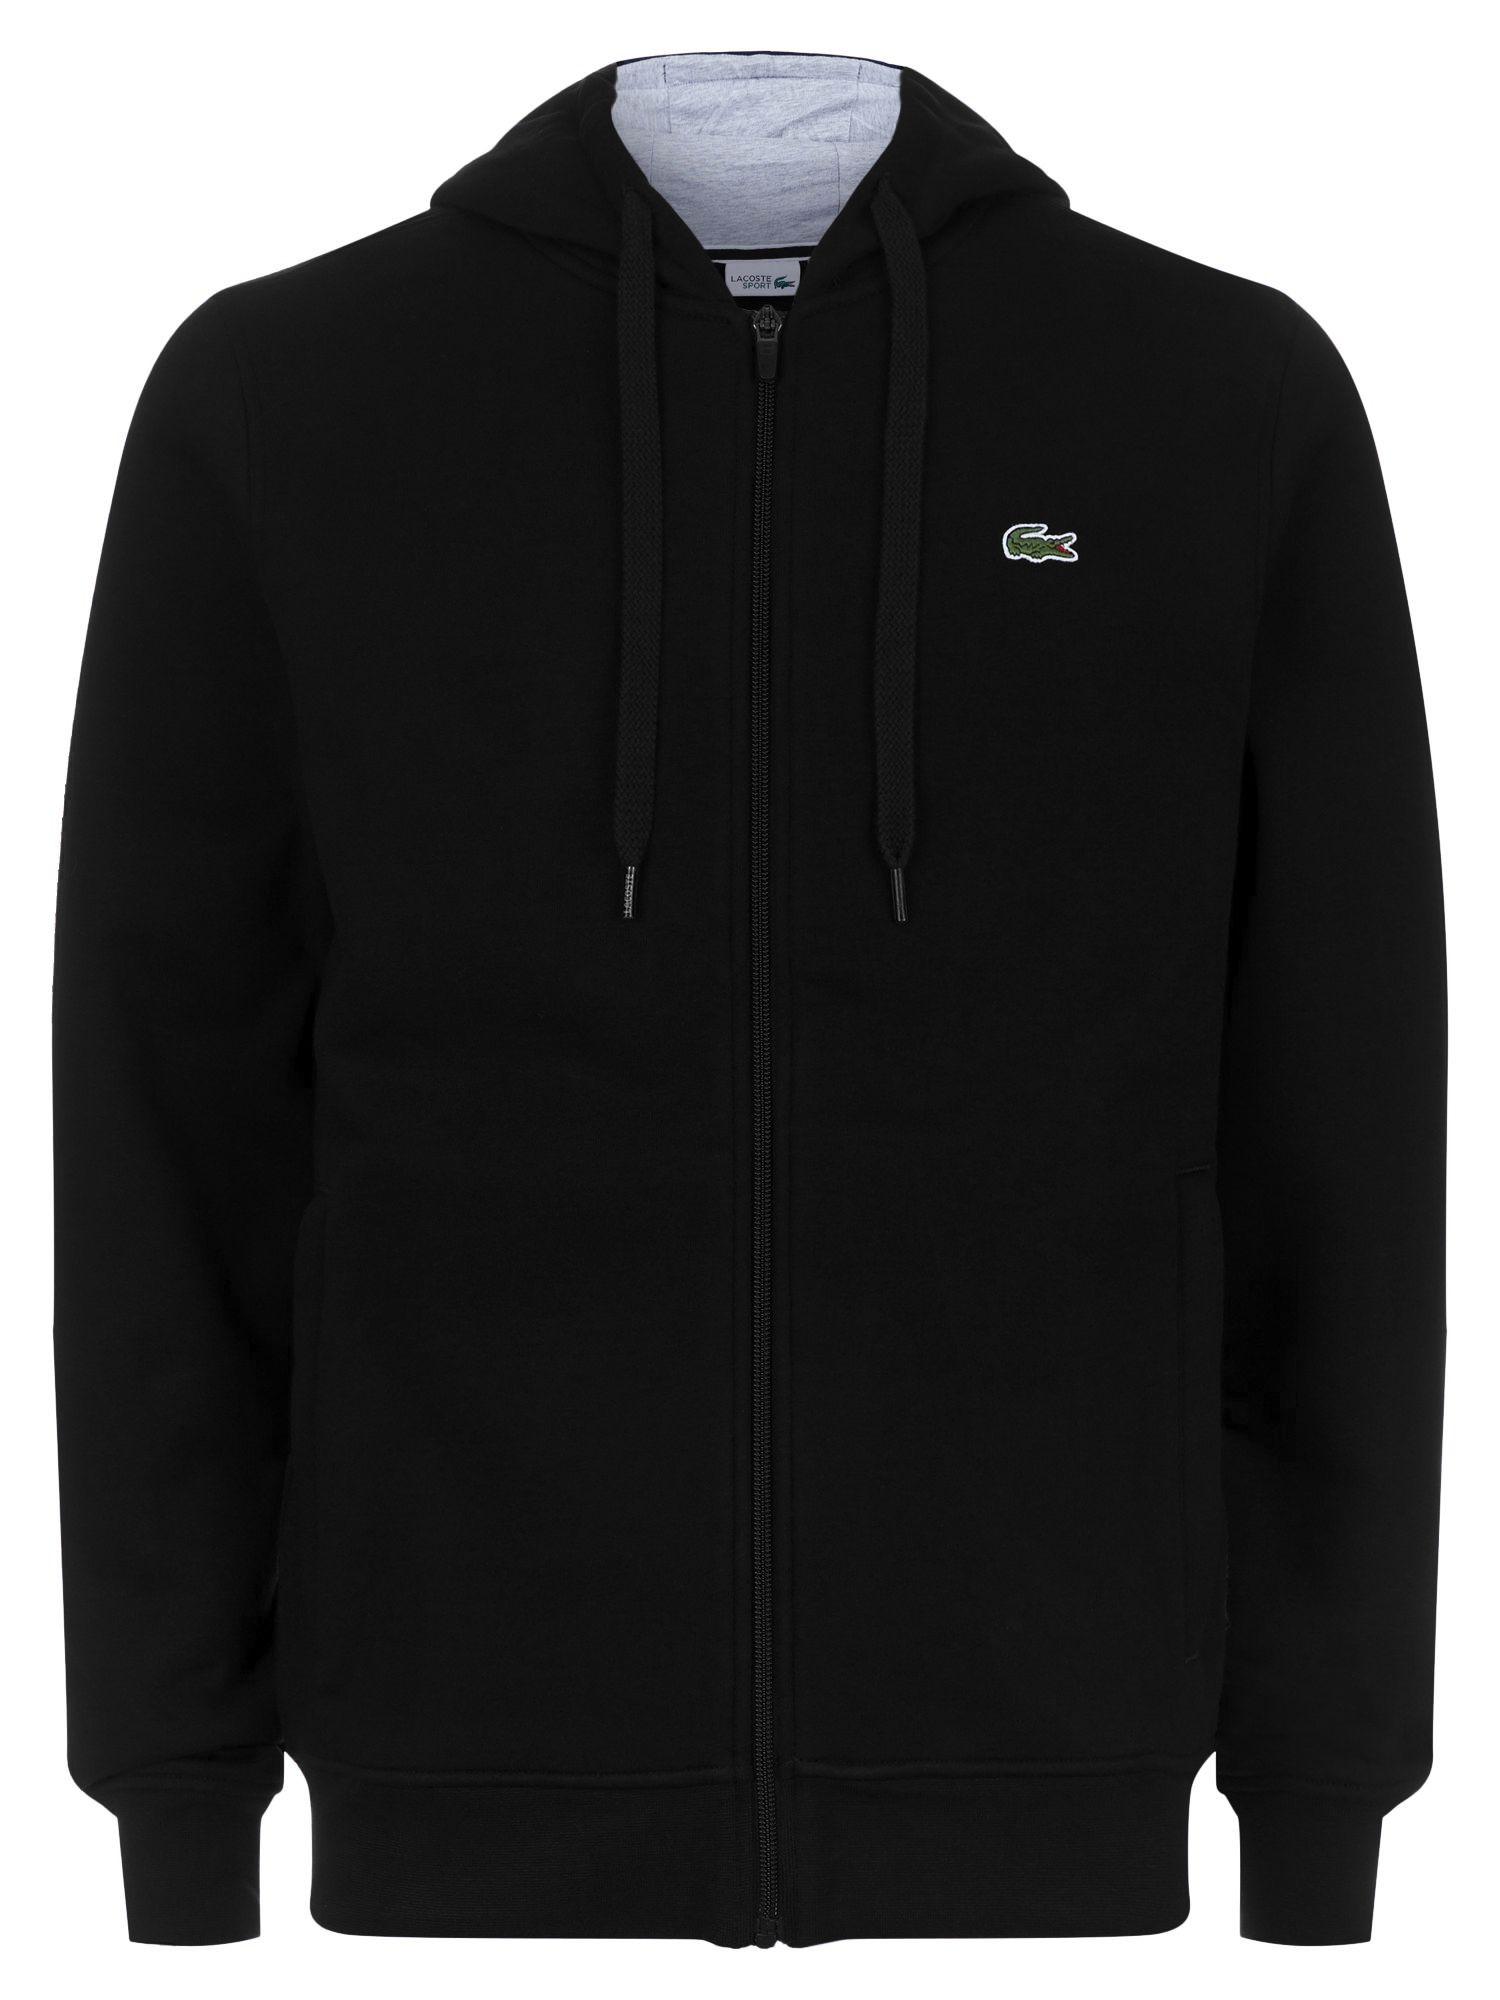 Men's Lacoste Lacoste Hooded Fleece Sweatshirt, Black & Grey